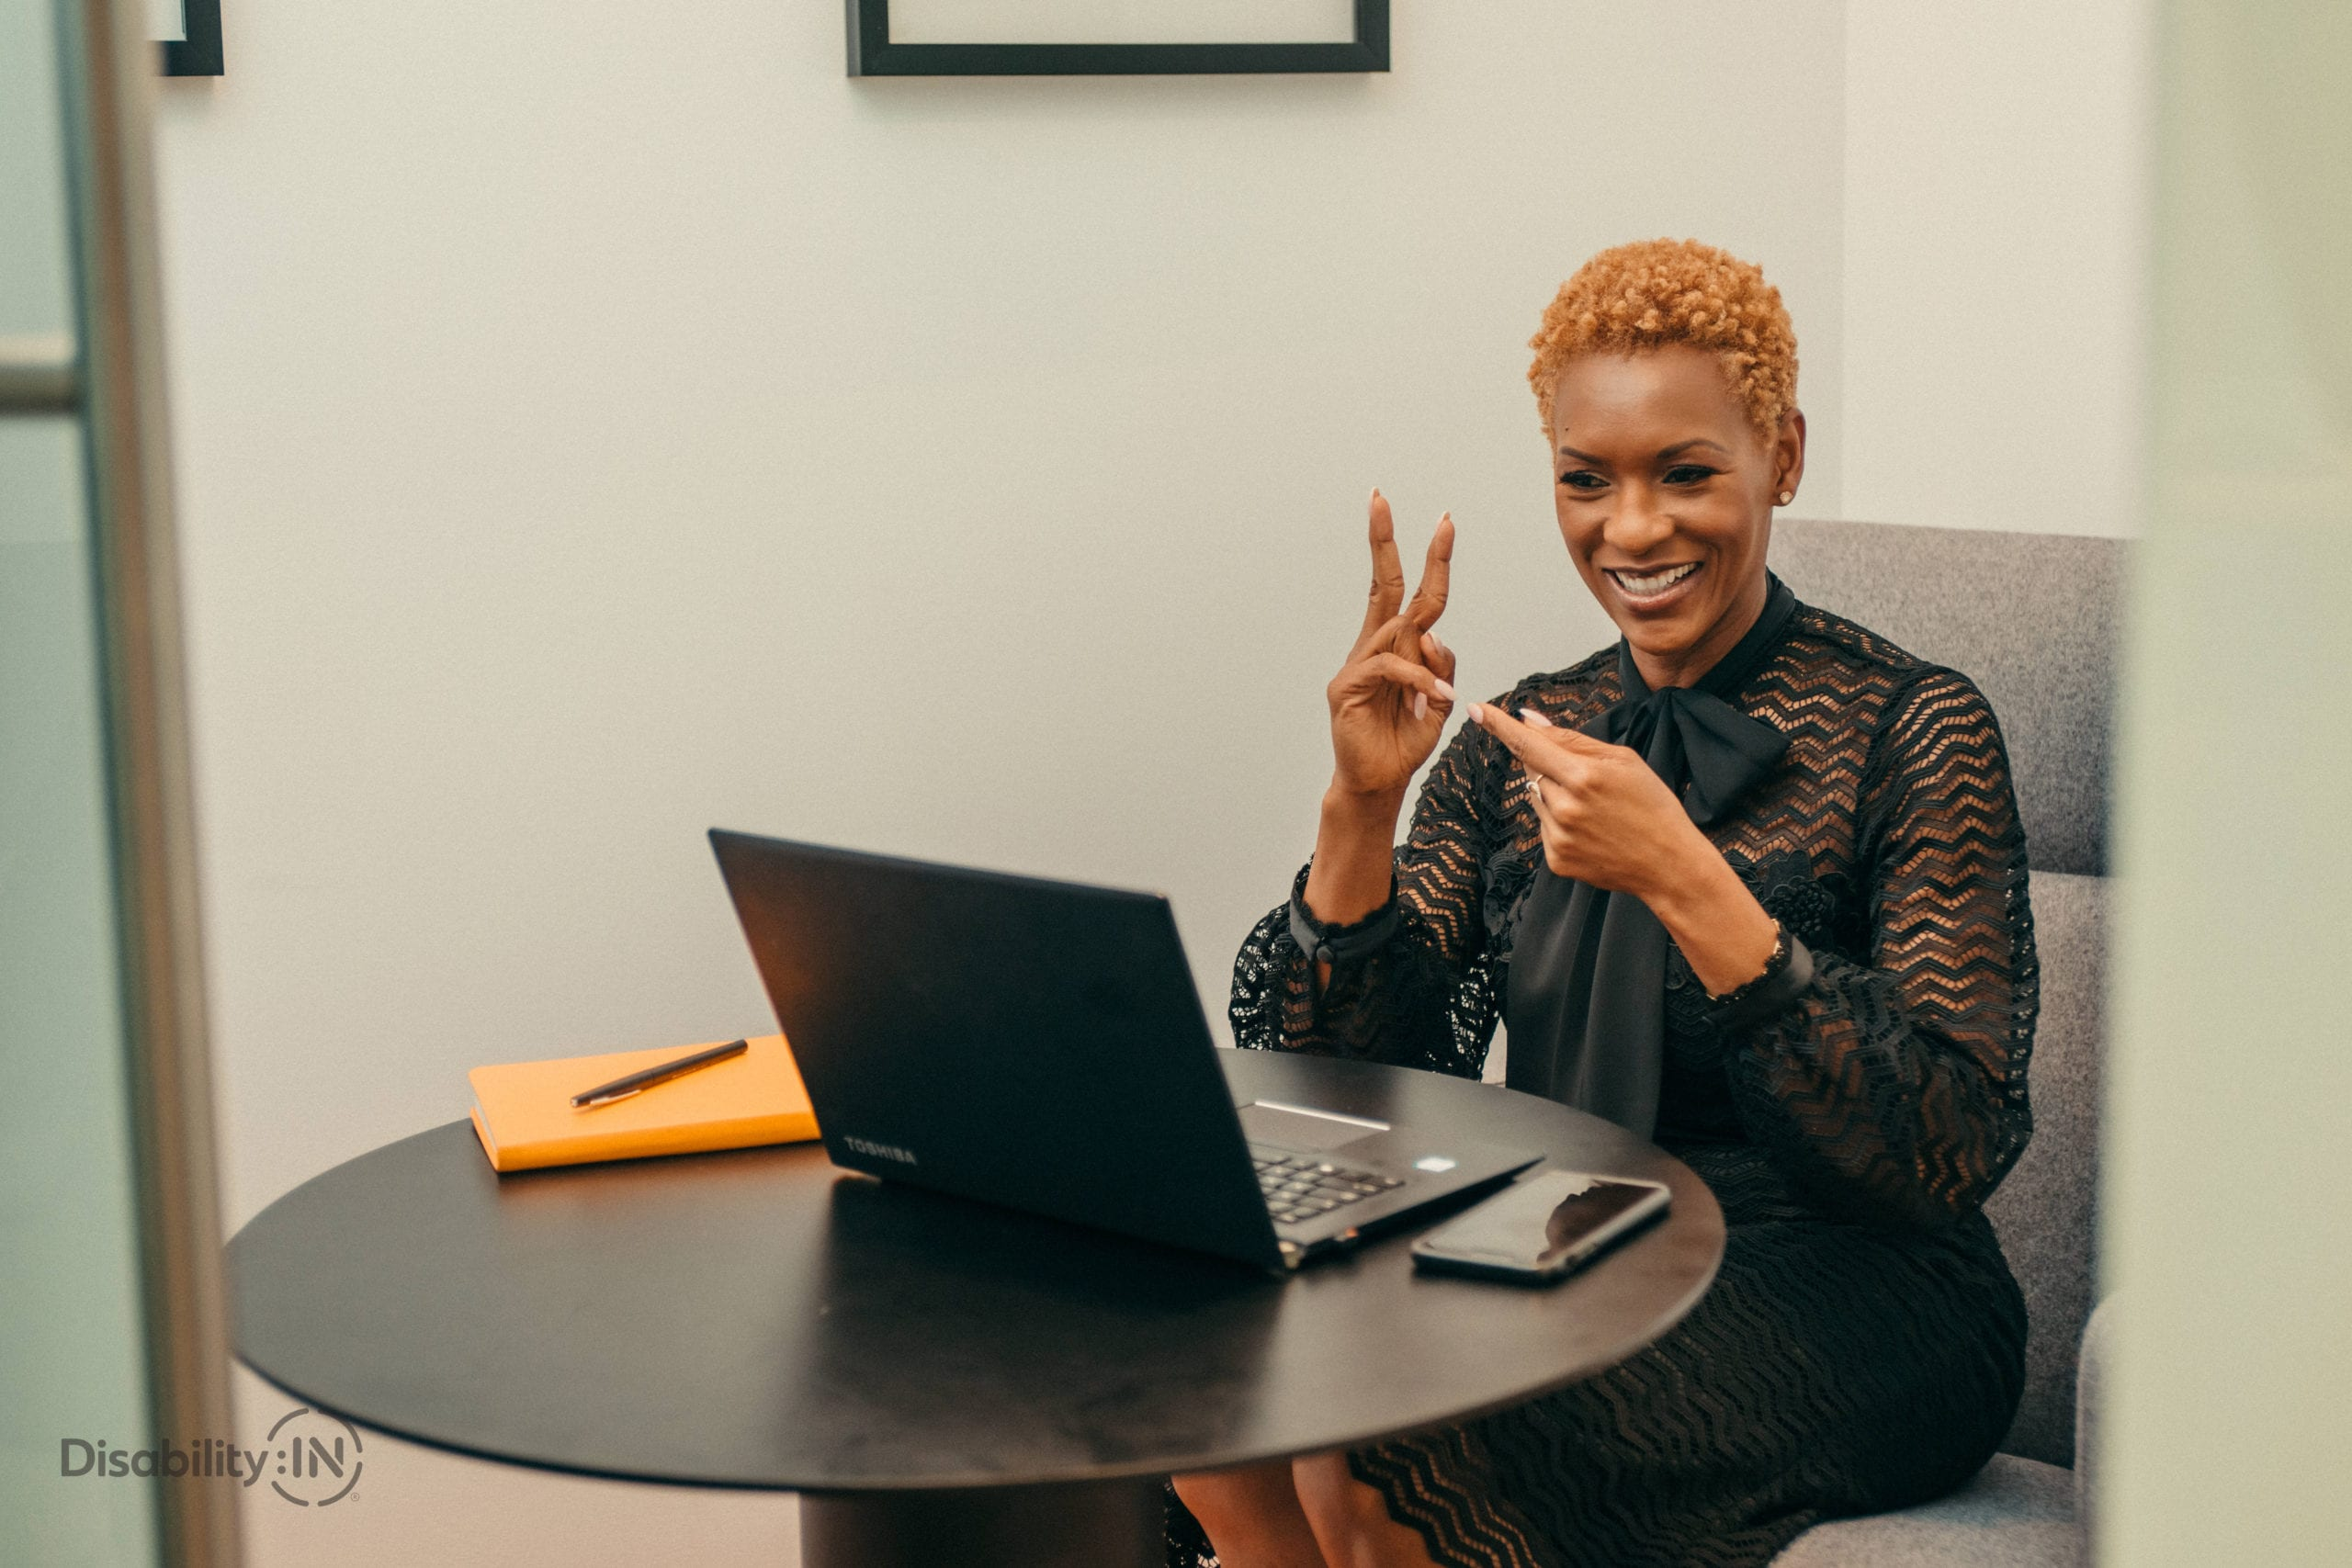 A black woman in a professional setting video conferences while signing into the computer.